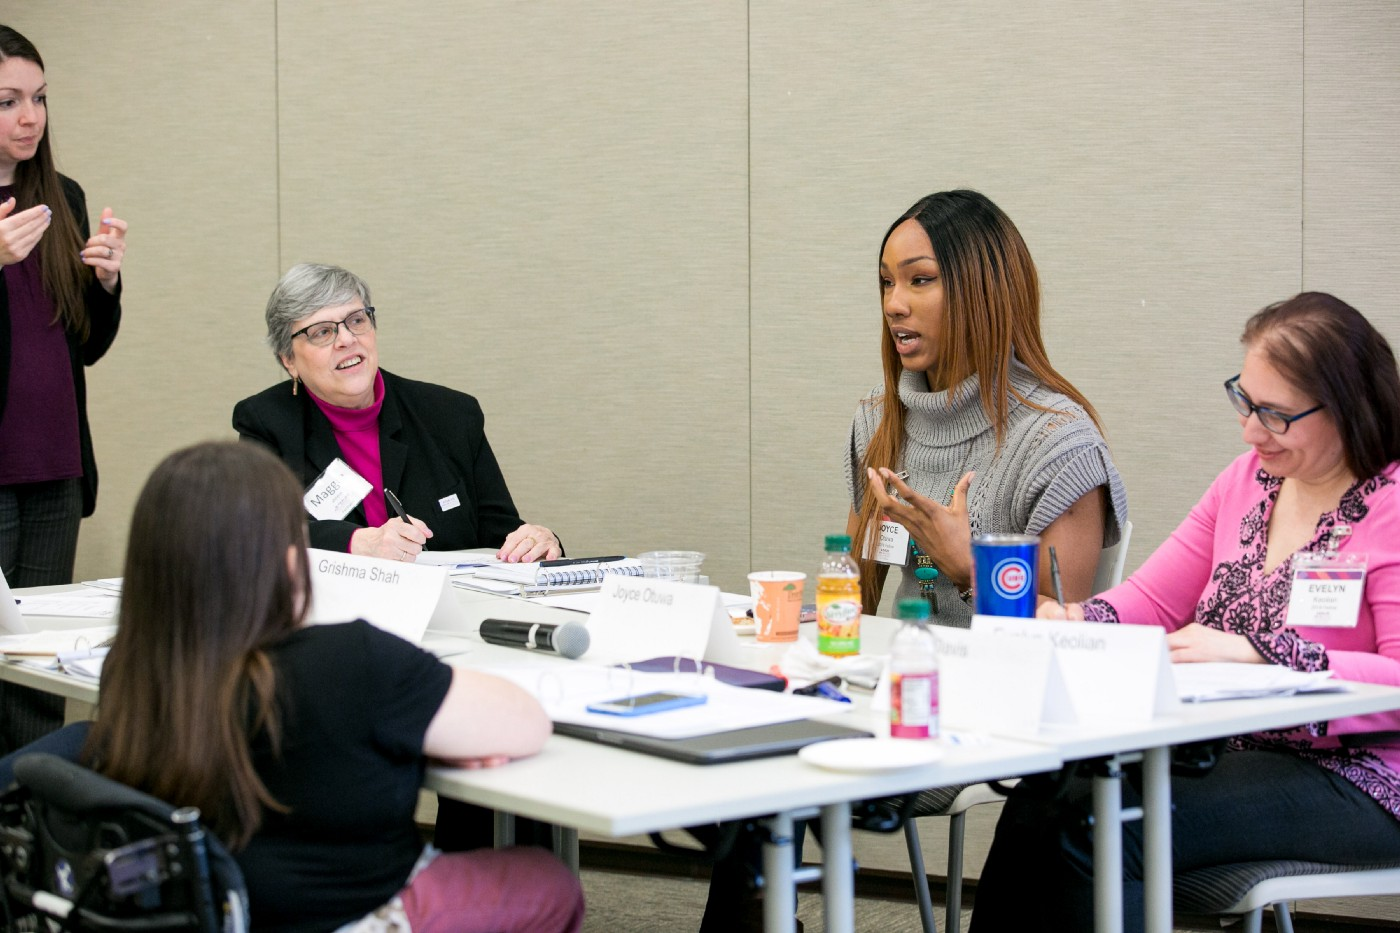 At a table, Joyce participates in a small group discussion. Her hair is long and brown, and she's wearing a gray turtleneck.